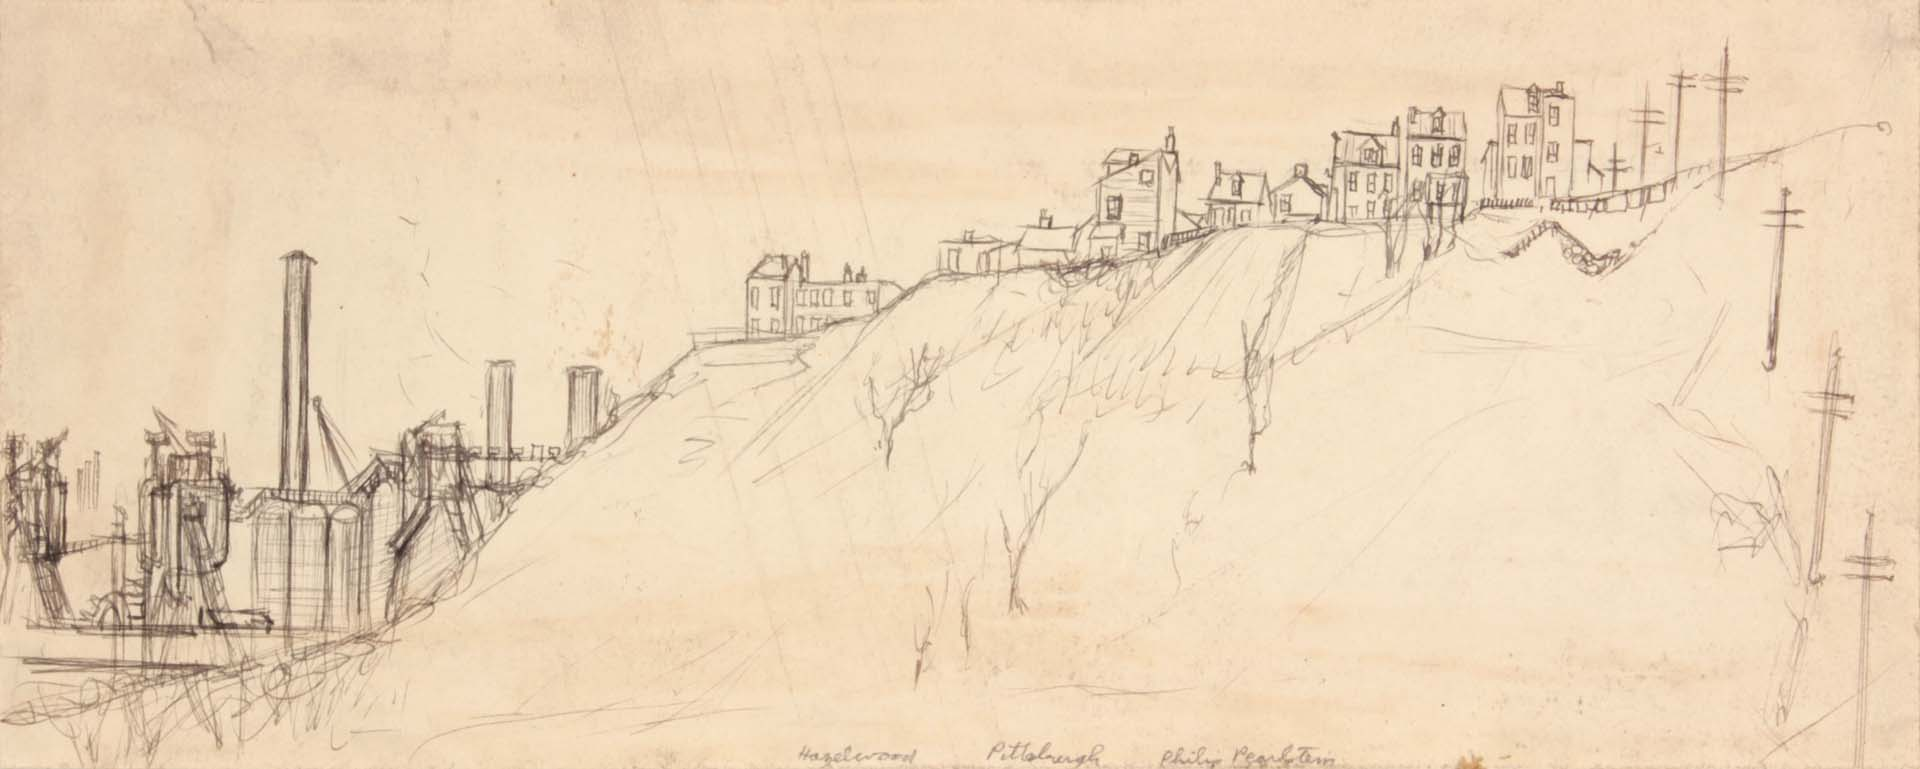 "1949 Hazelwood Pittsburgh Graphite and Pen and Ink on Paper 5.4375"" x 13.625"""